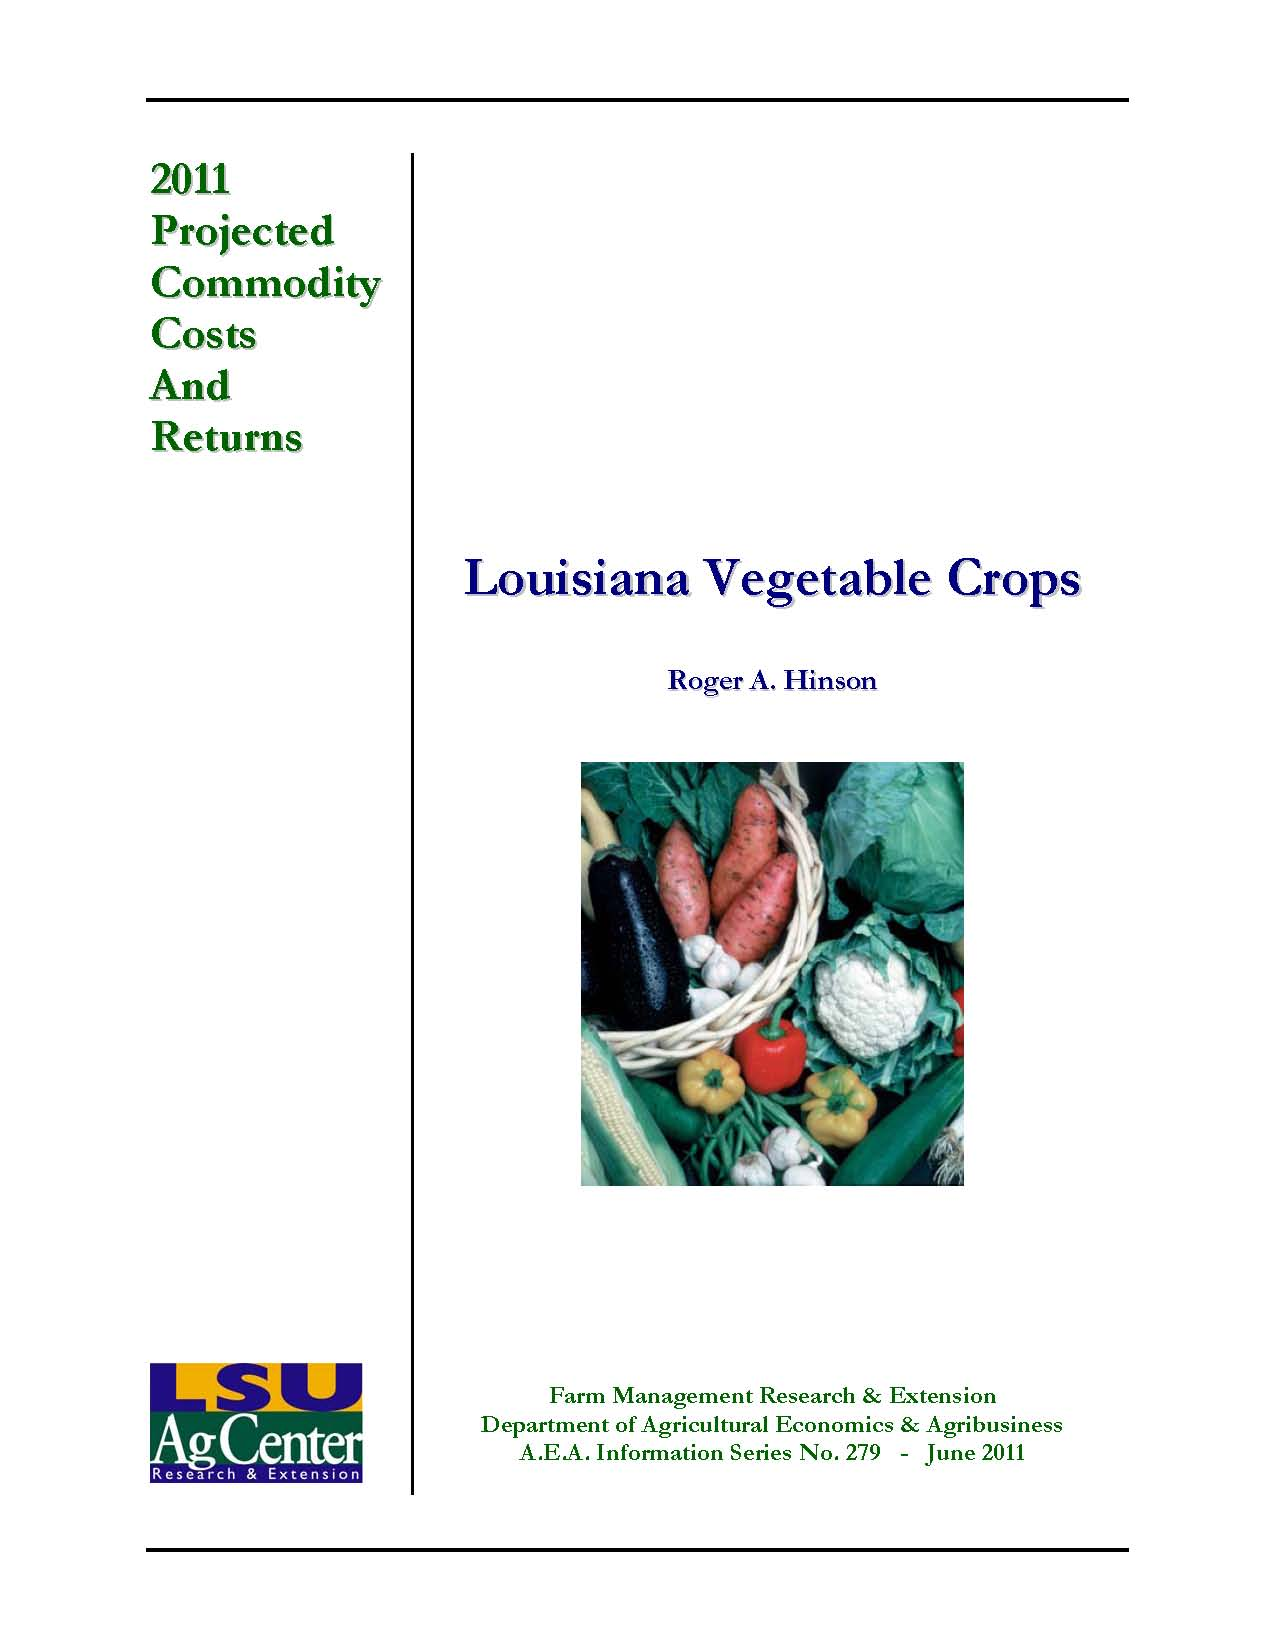 2011 Vegetable Crop Production Cost Budgets